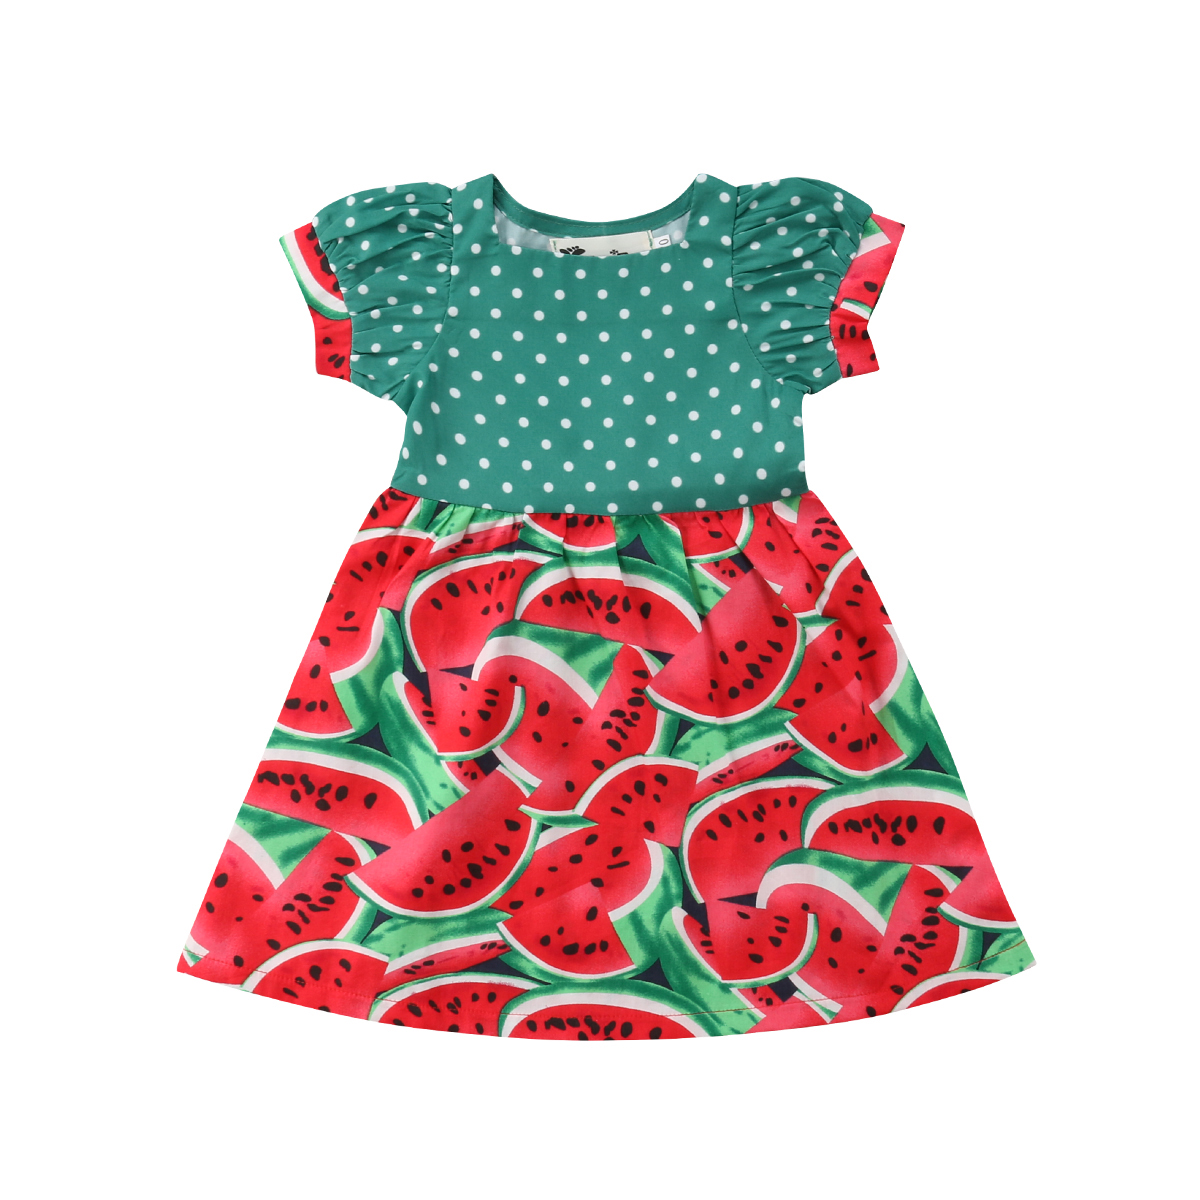 Candid 2019 Newest Style Summer Toddler Kids Baby Fashion Girl Short Sleeve Party Princess Adorable Dress Holiday Clothes 6m-3y